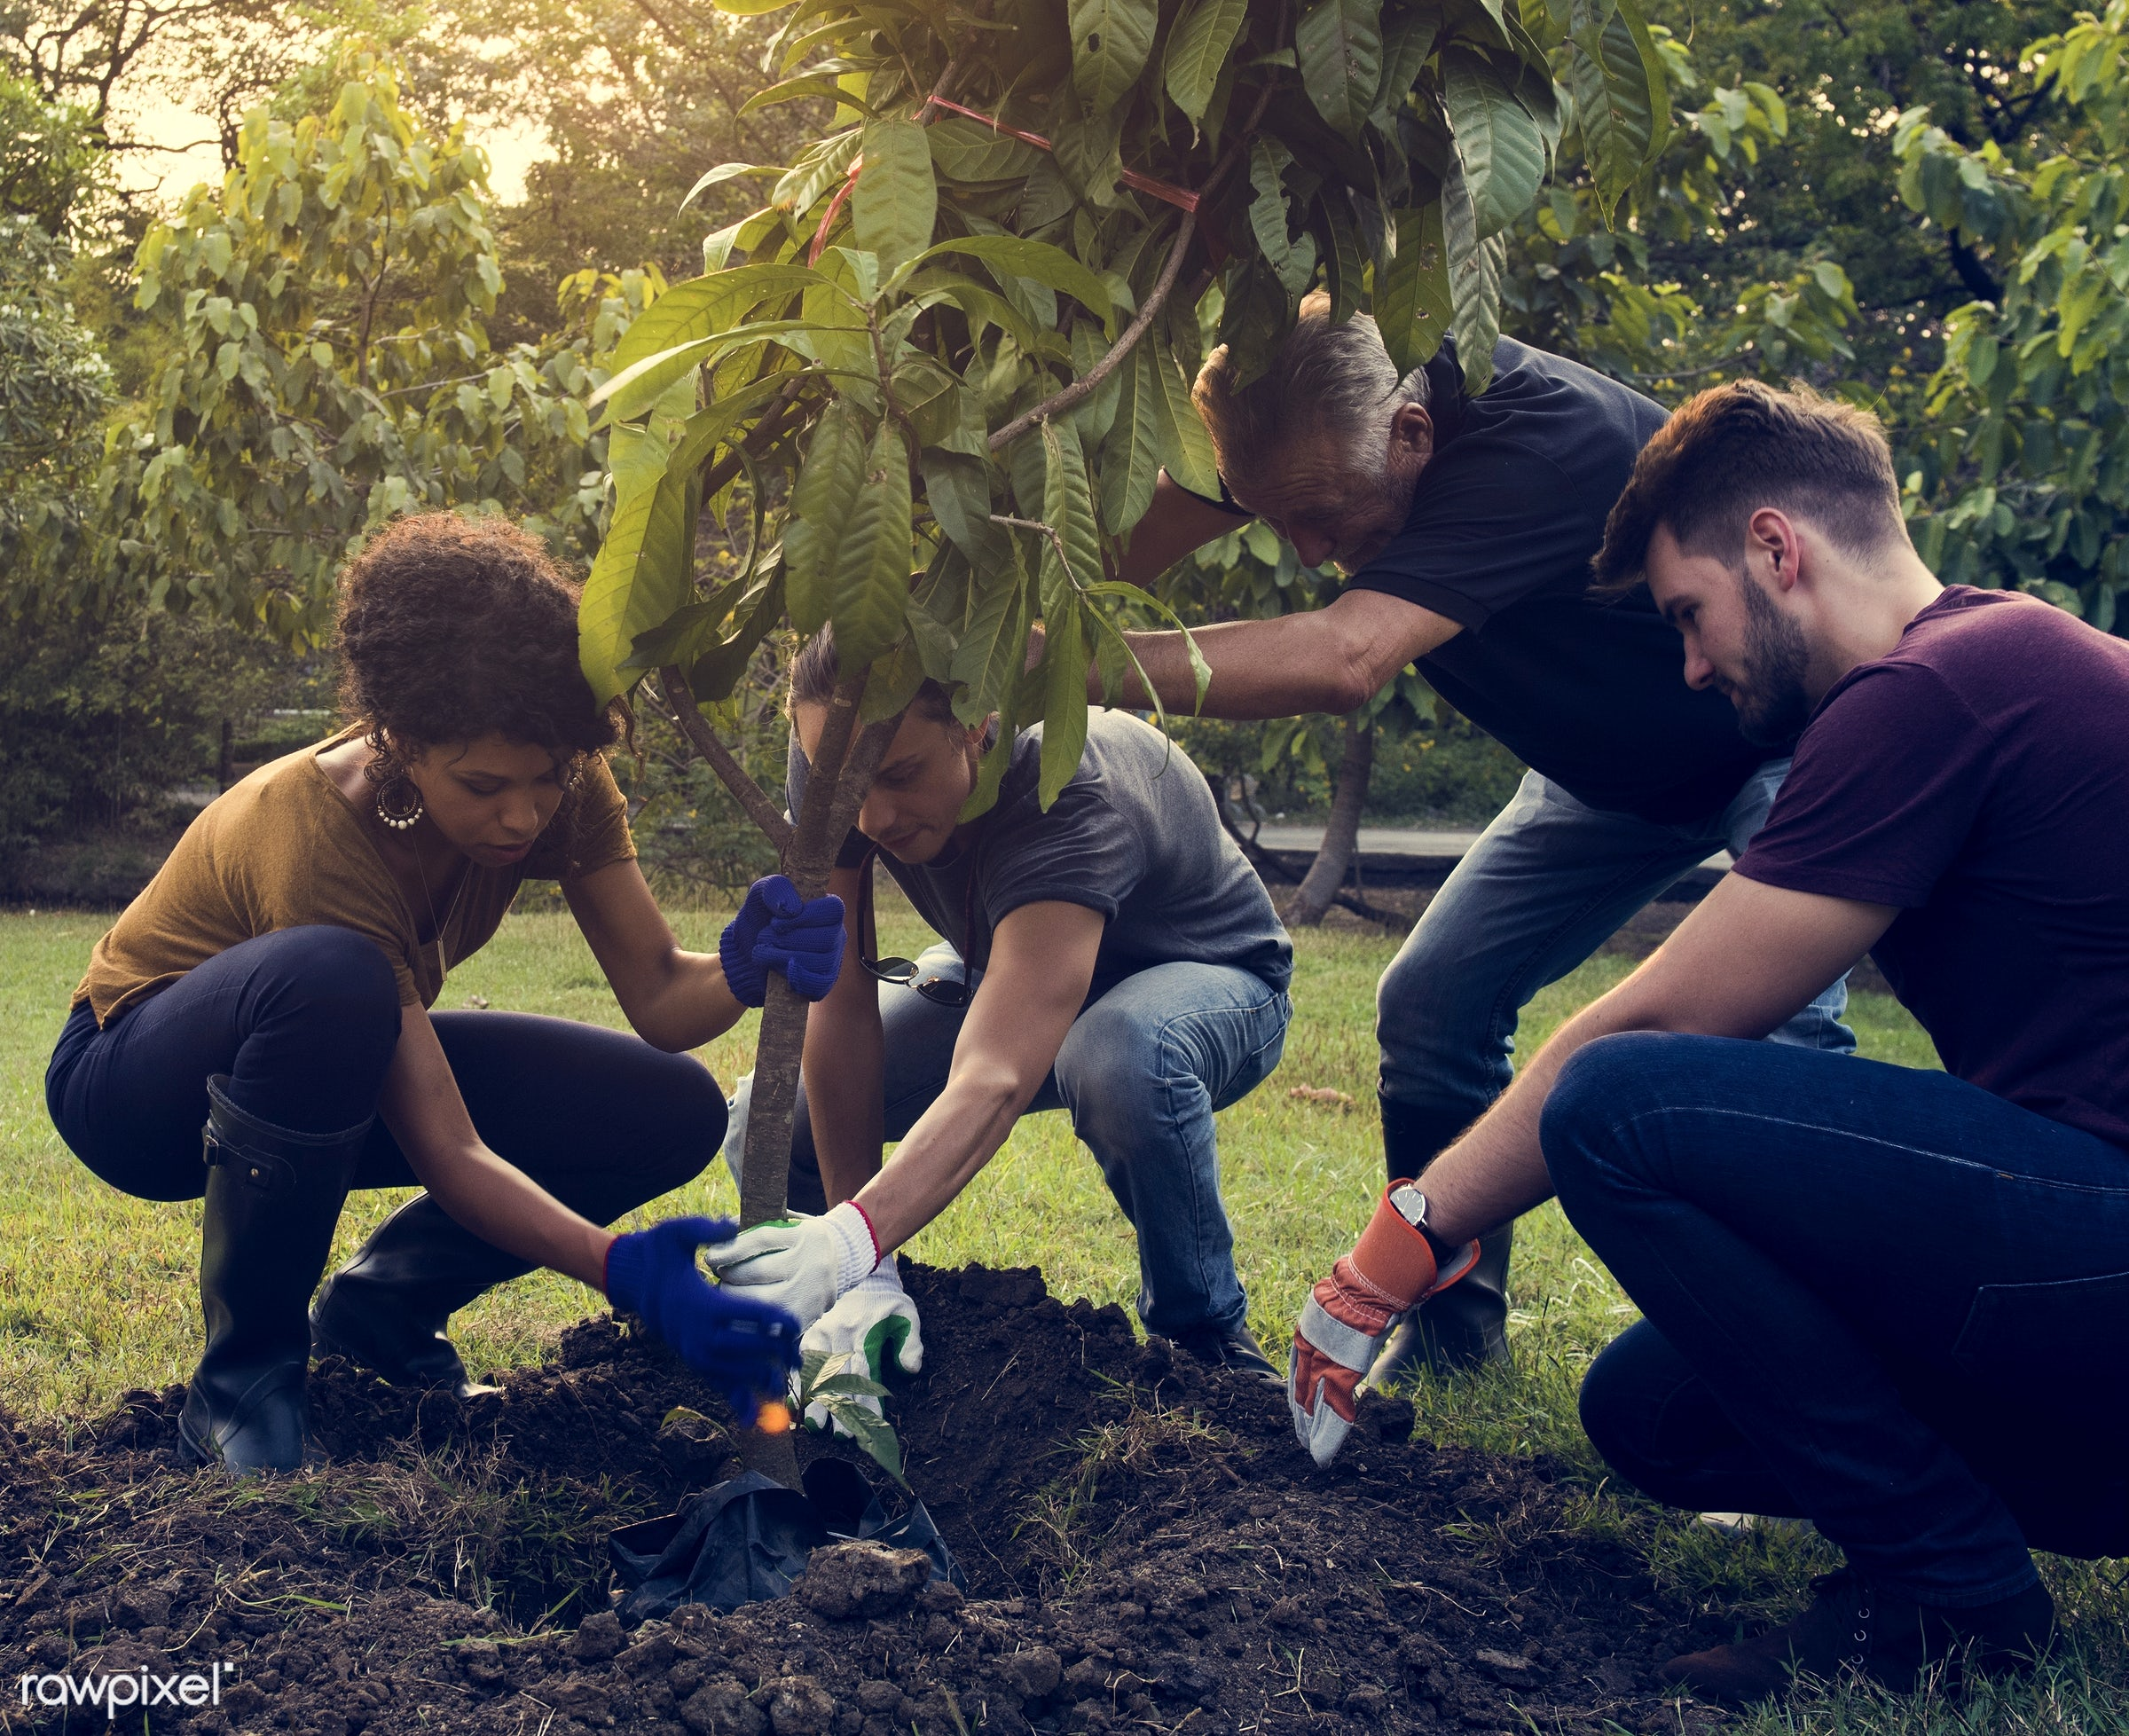 person, save, community service, people, together, help, tree, nature, woman, friendship, dirt, responsibility, support,...